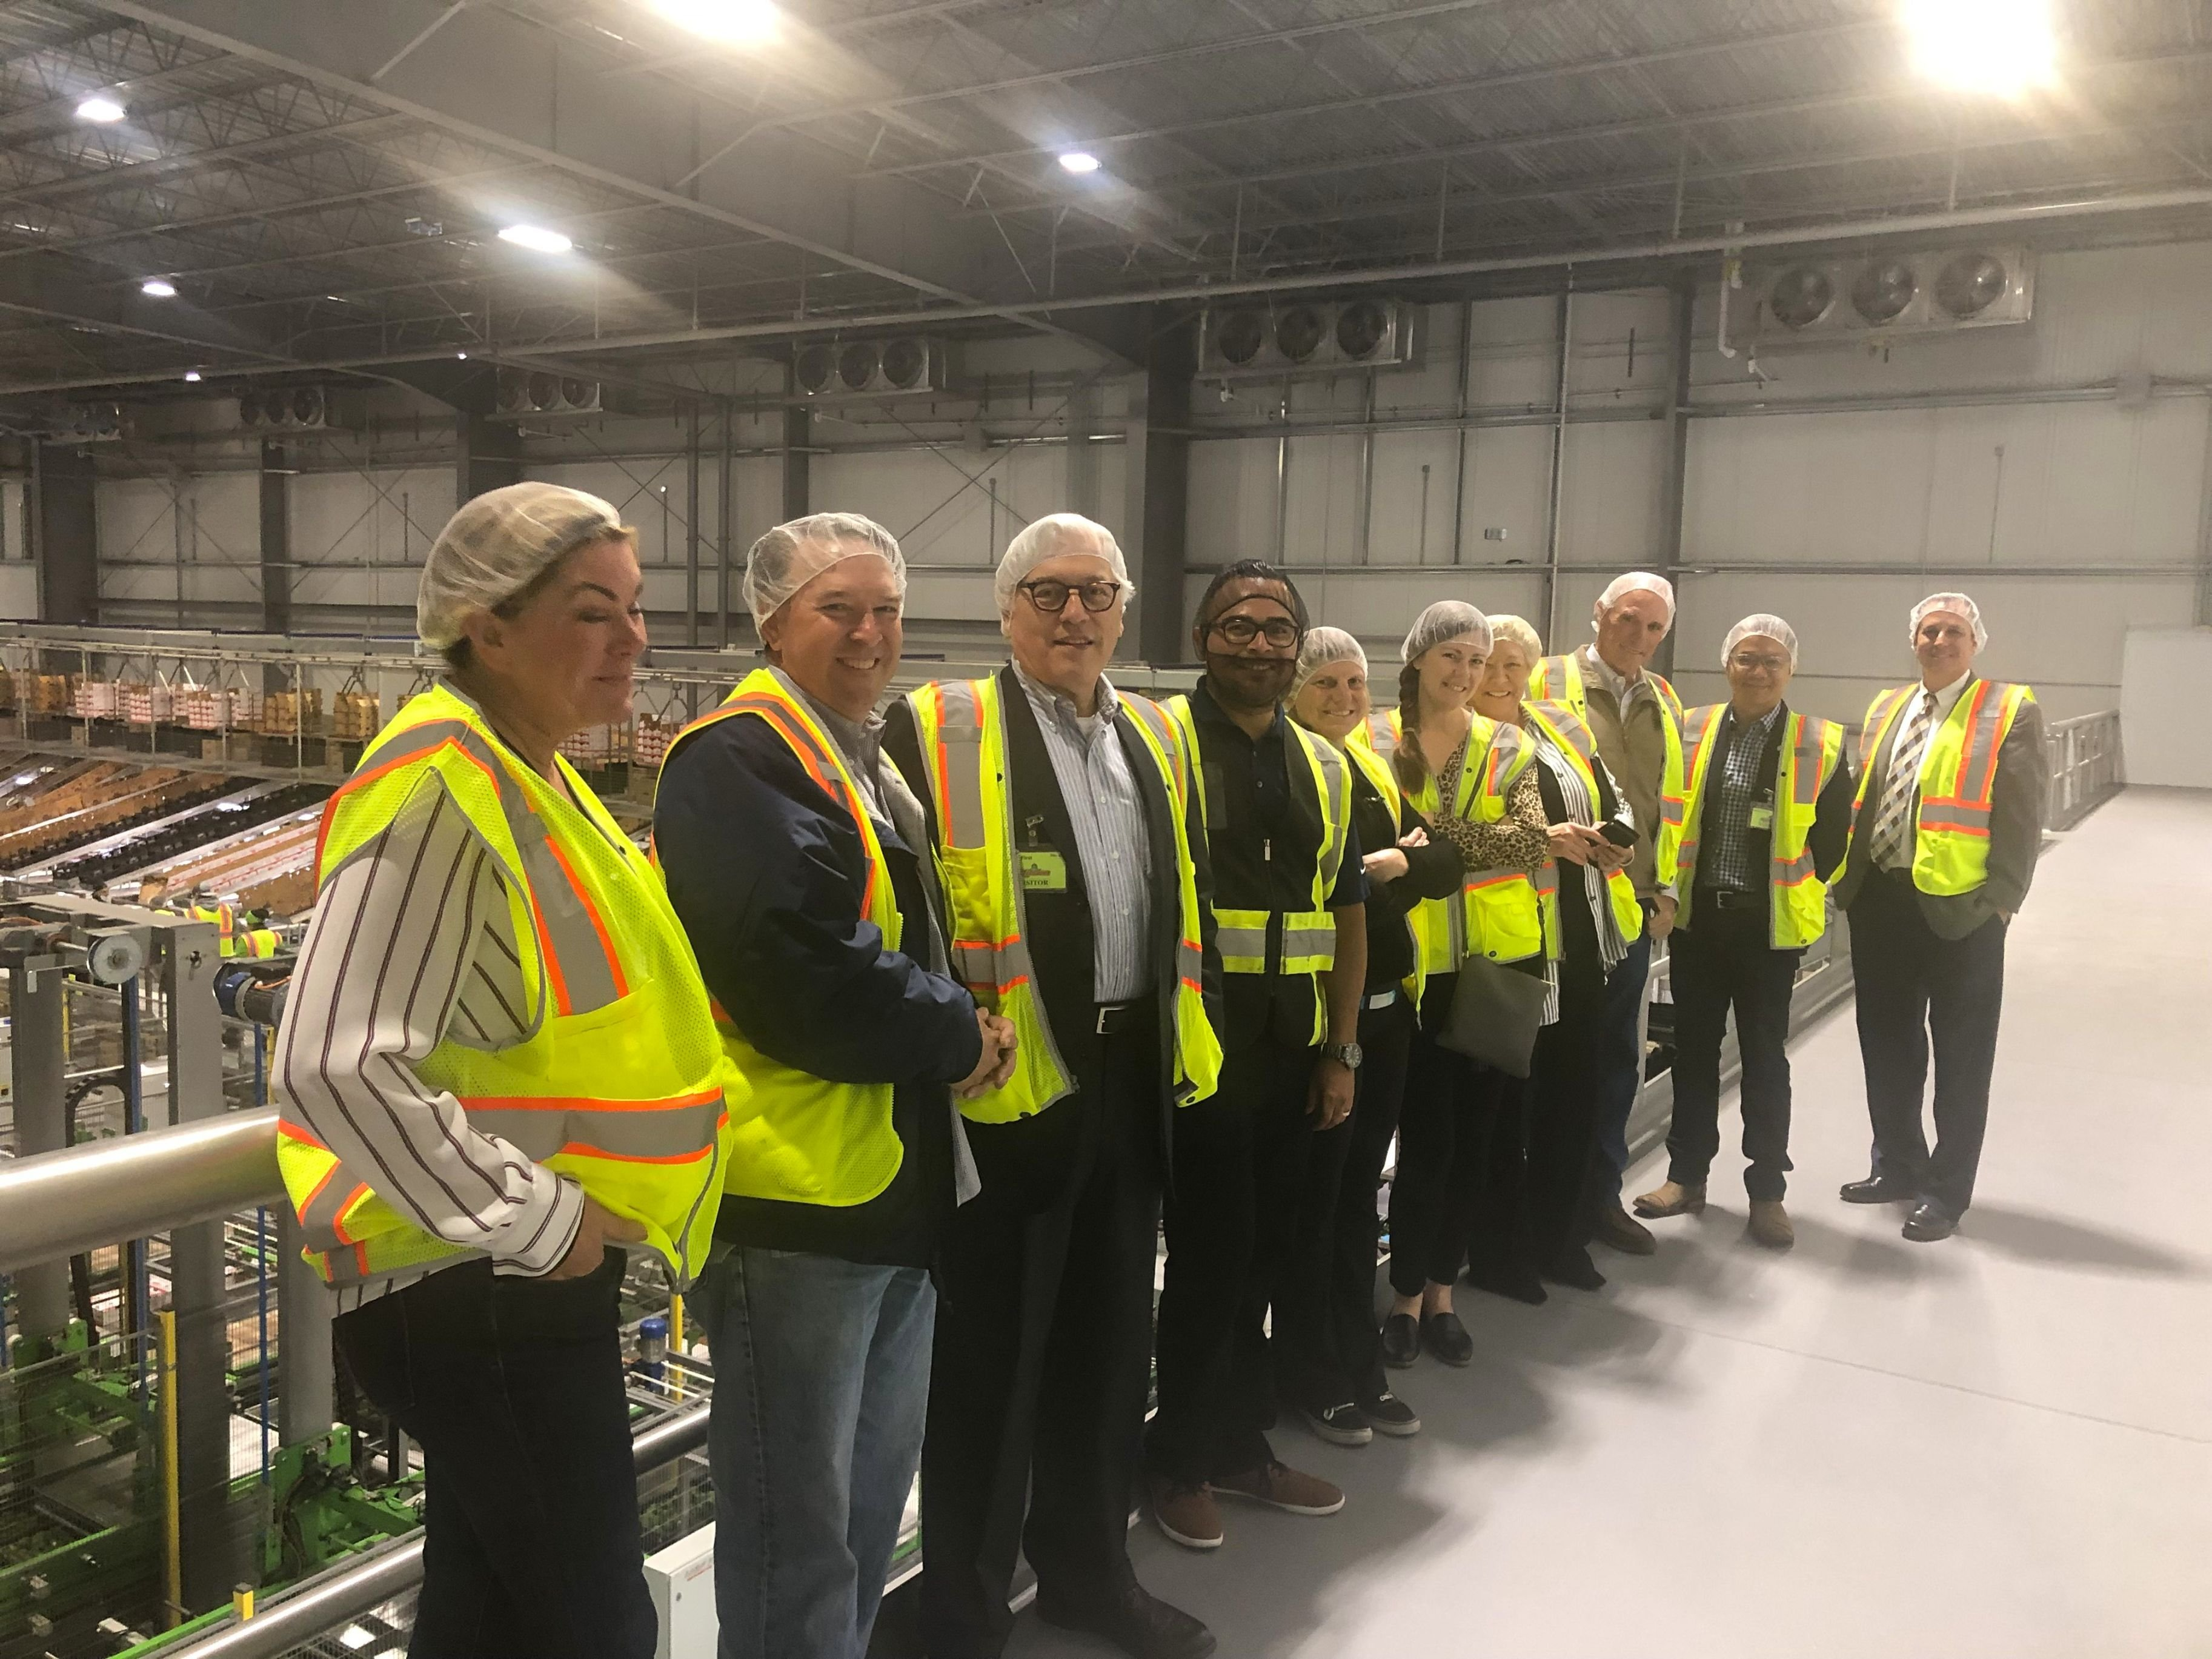 City of Oxnard, Oxnard Chamber of Commerce, Port of Hueneme joint tour of Mission Produce New Cold Storage Facility in Oxnard, CA